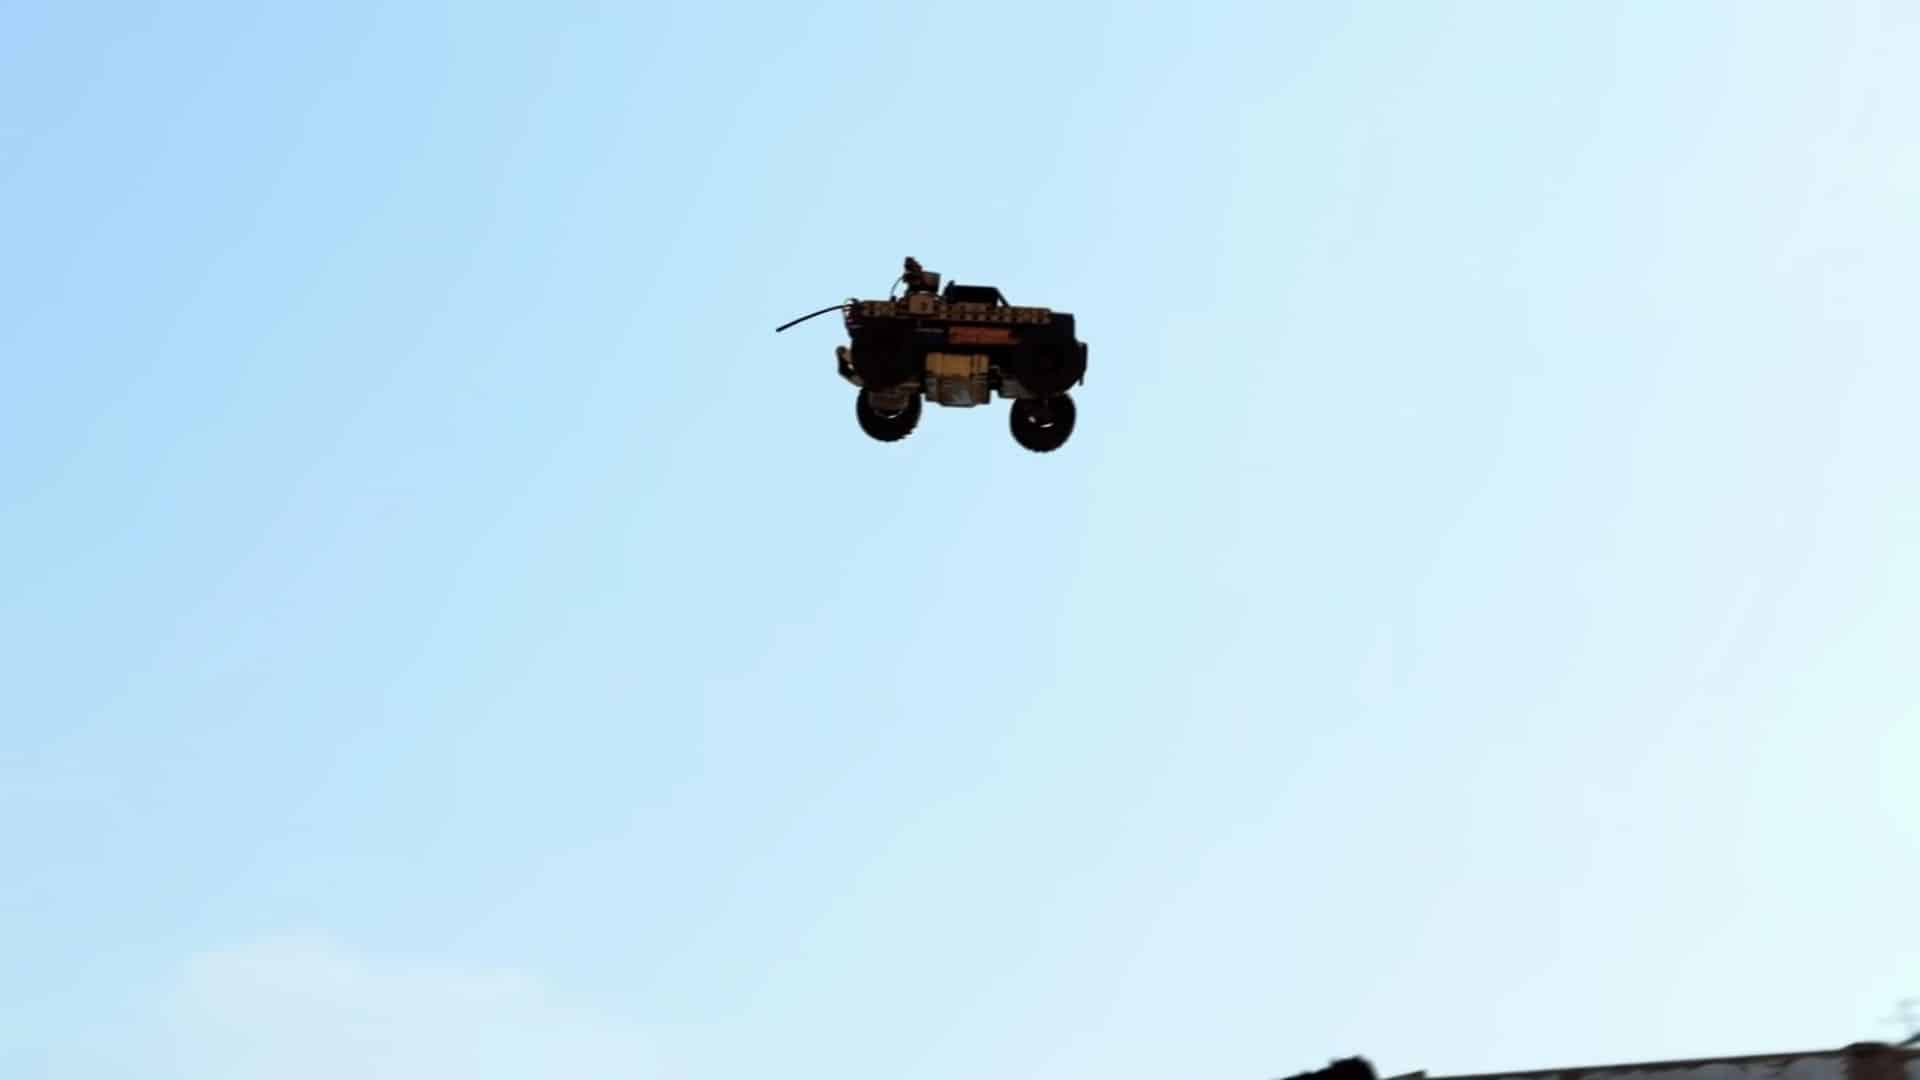 the rc xd jumping in nuketown 84 easter egg